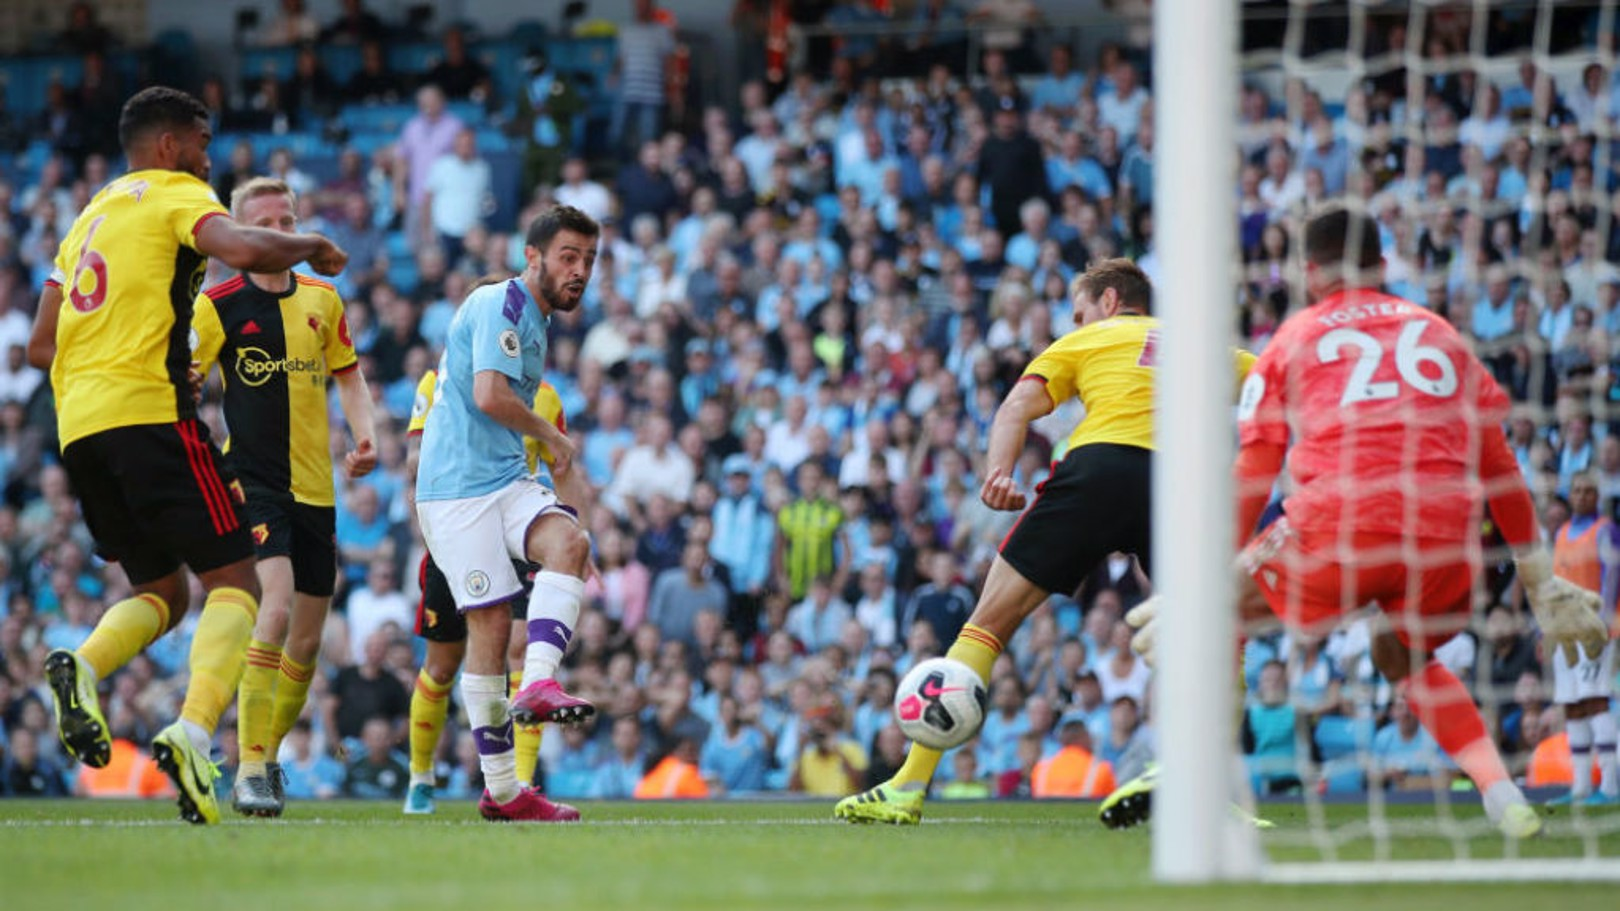 SIX AND THE CITY: Bernardo nets his second and our sixth goal early in the second half